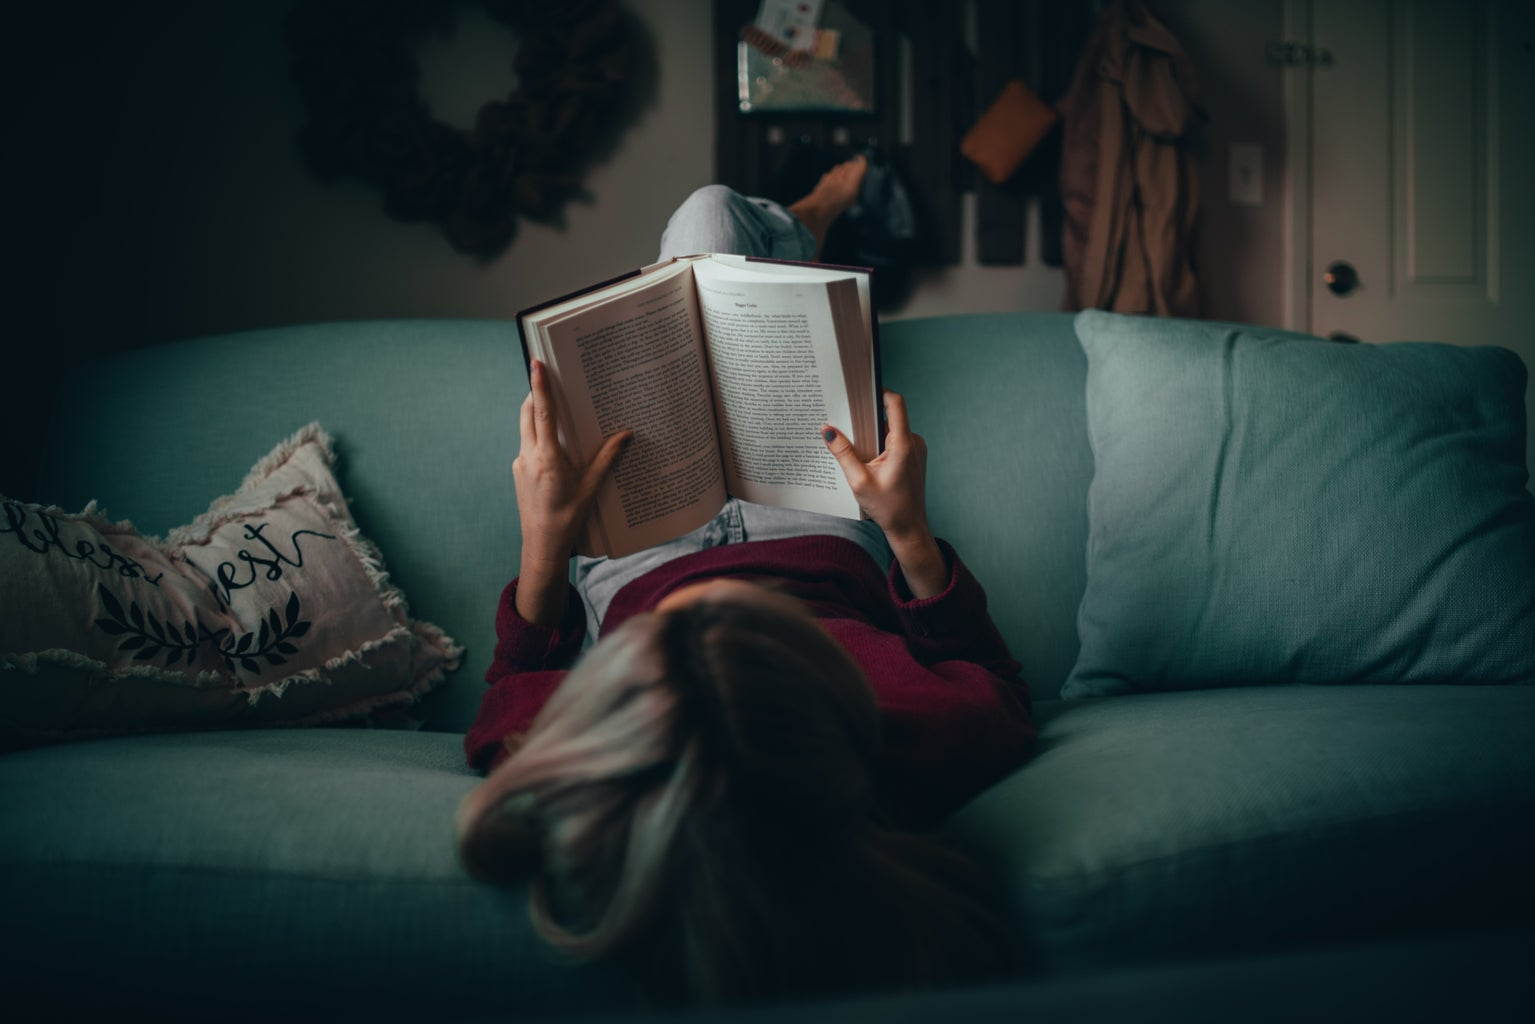 A woman reading on a couch.